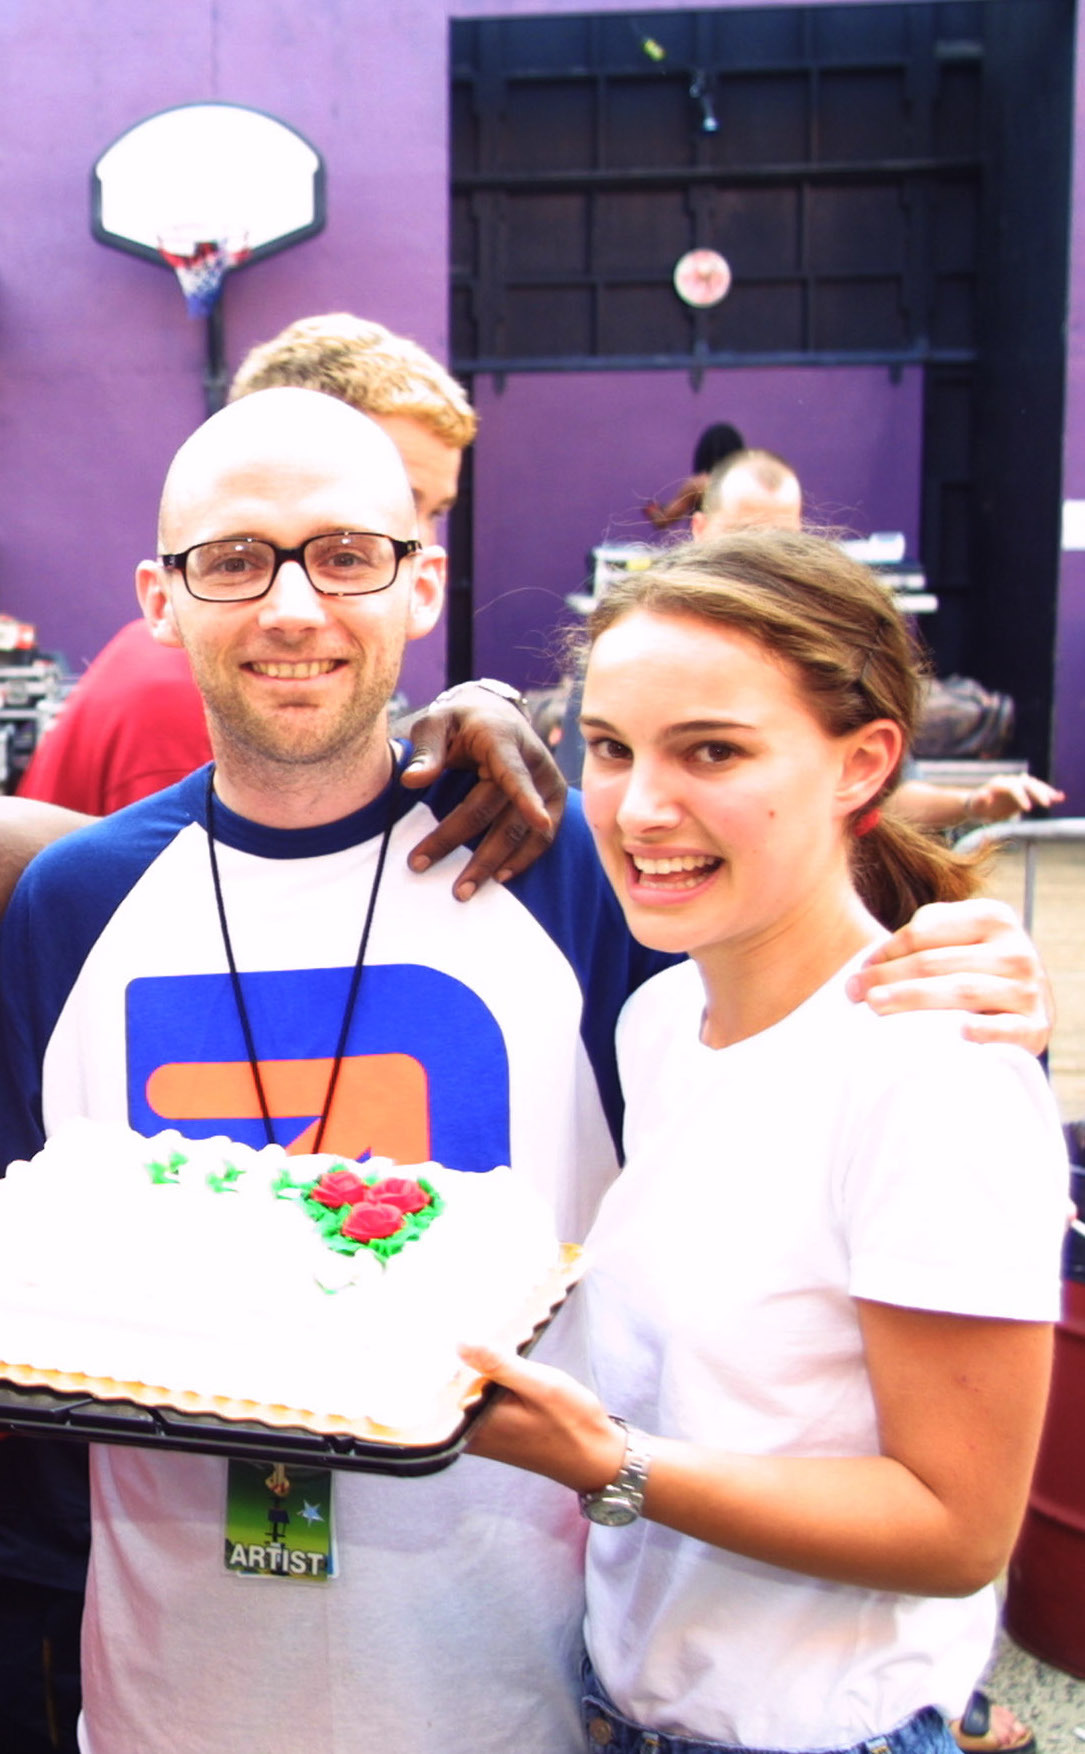 Moby and Natalie Portman are pictured at the Area One Concert at Jones Beach in Wantagh, Long Island, New York on July 15, 2001.